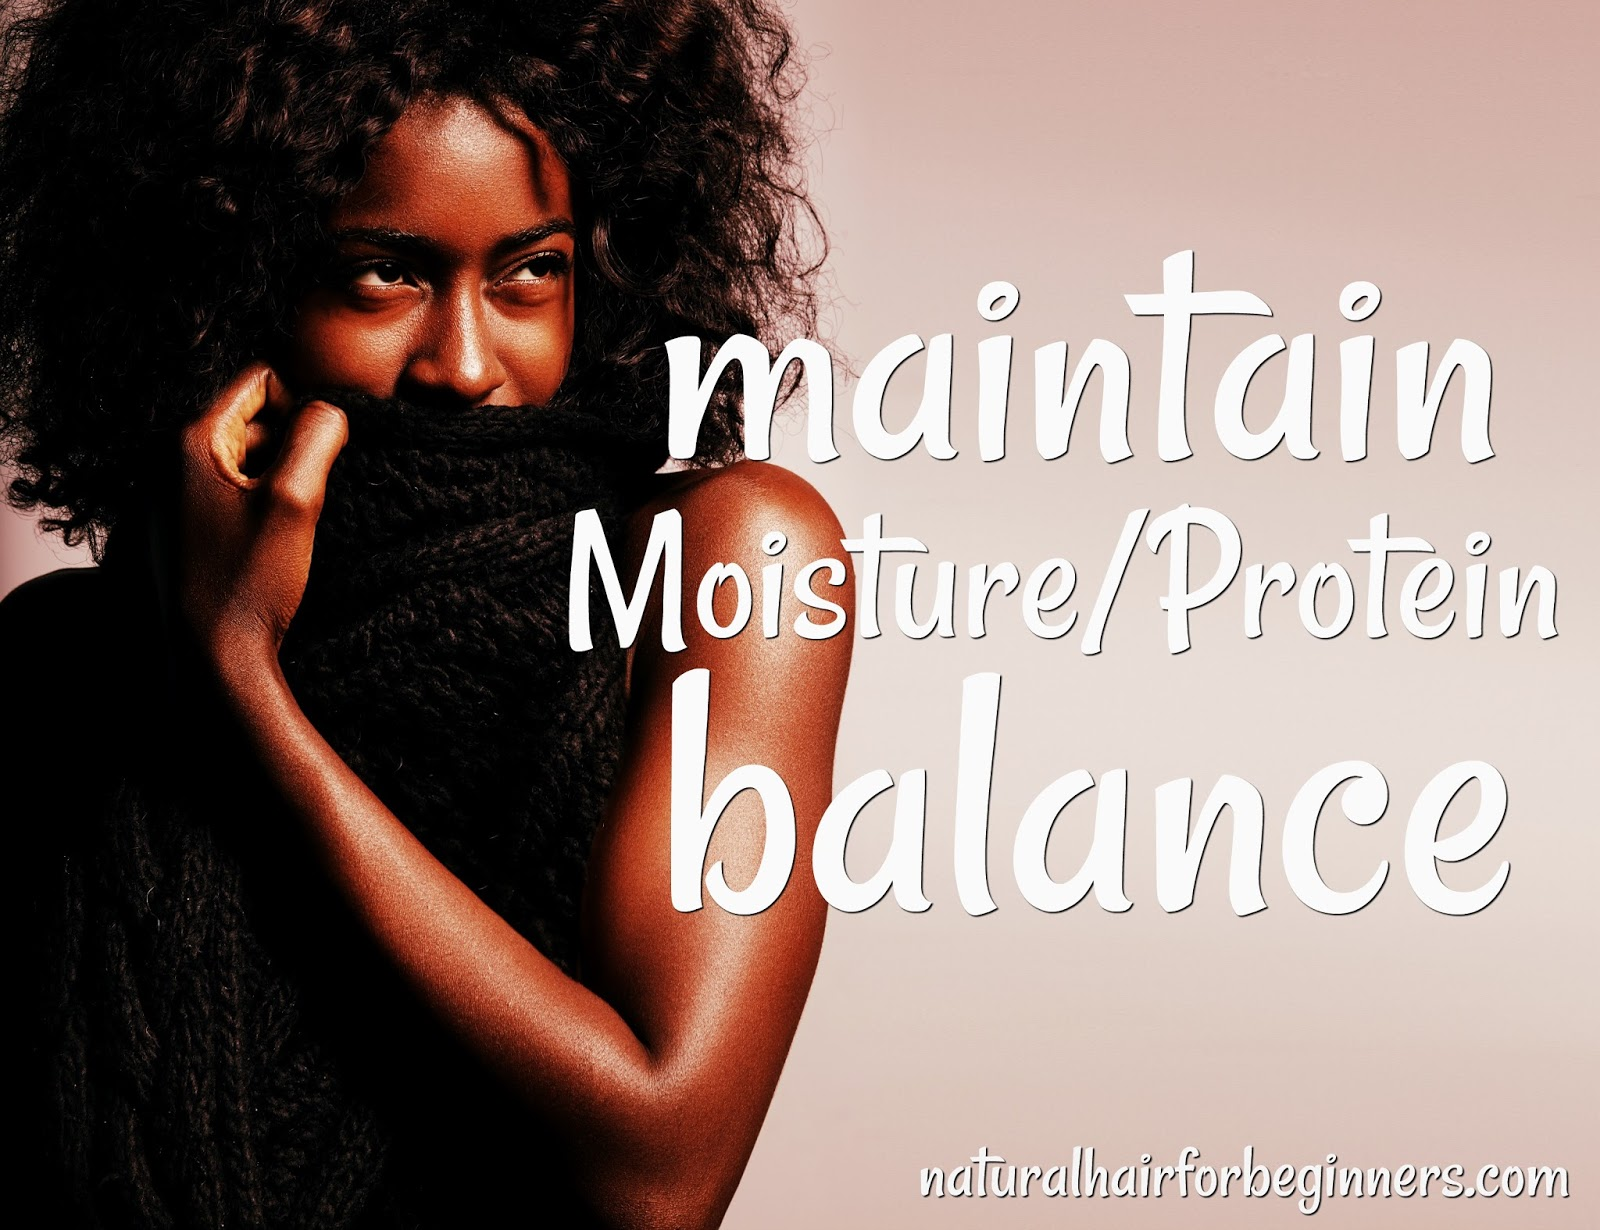 Natural Hair Tips For Black Women Going Natural. Black women are going natural in groves and many are unsure just what to do.